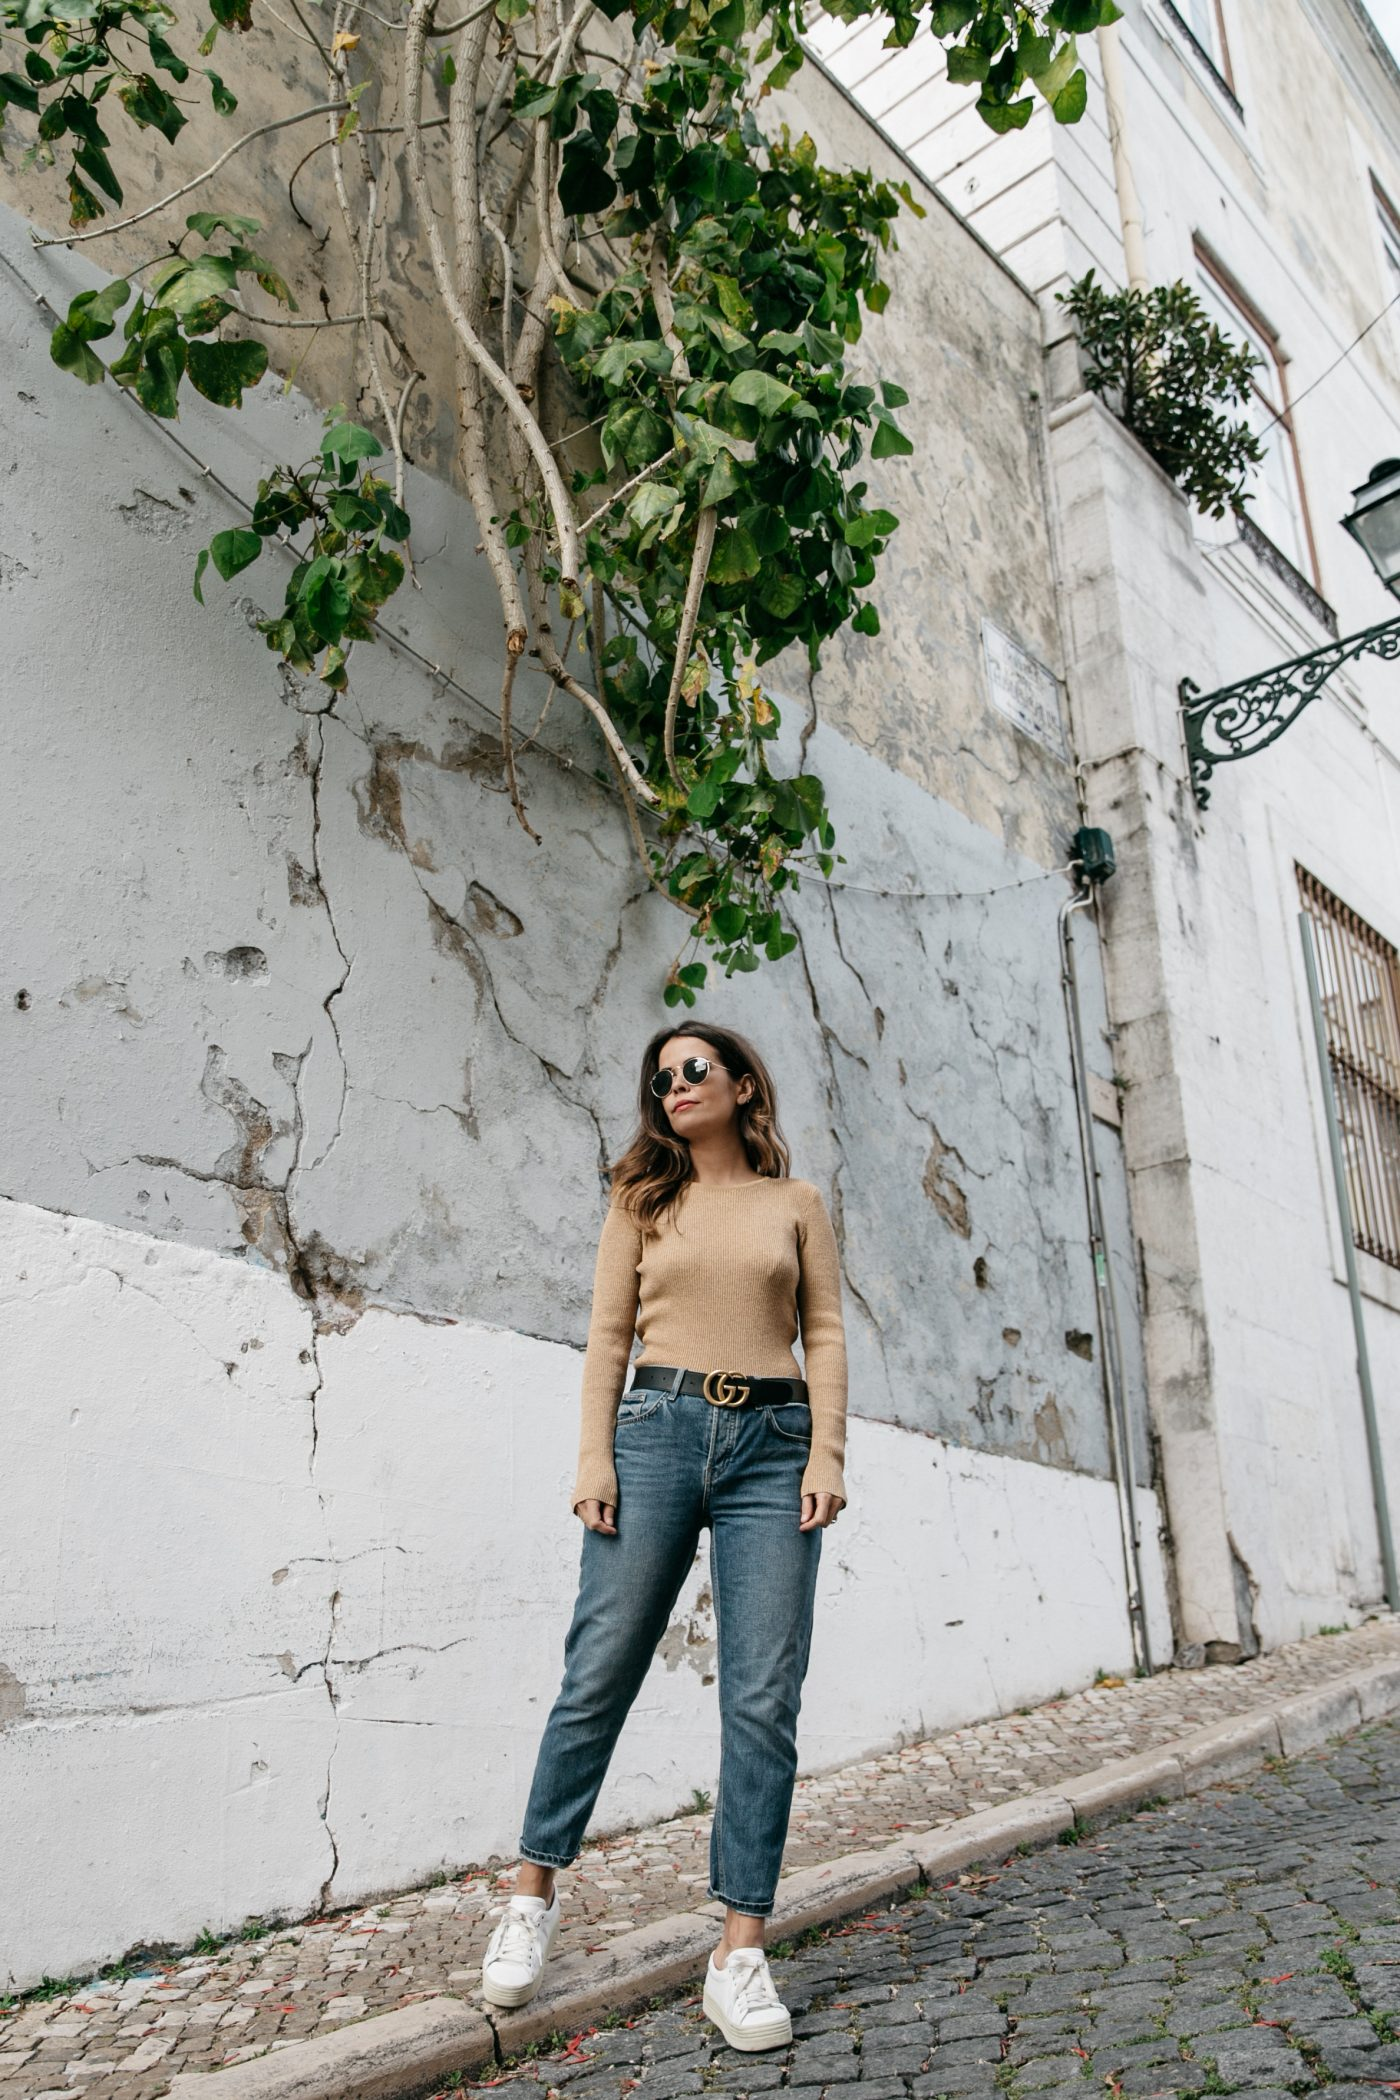 Metallic_Sweater-Cameo_The_Label-Melie-Lisboa-Denim-Topshop-Gucci_Belt-Saint_Laurent_Sneakers-Outfit-Street_Style-30